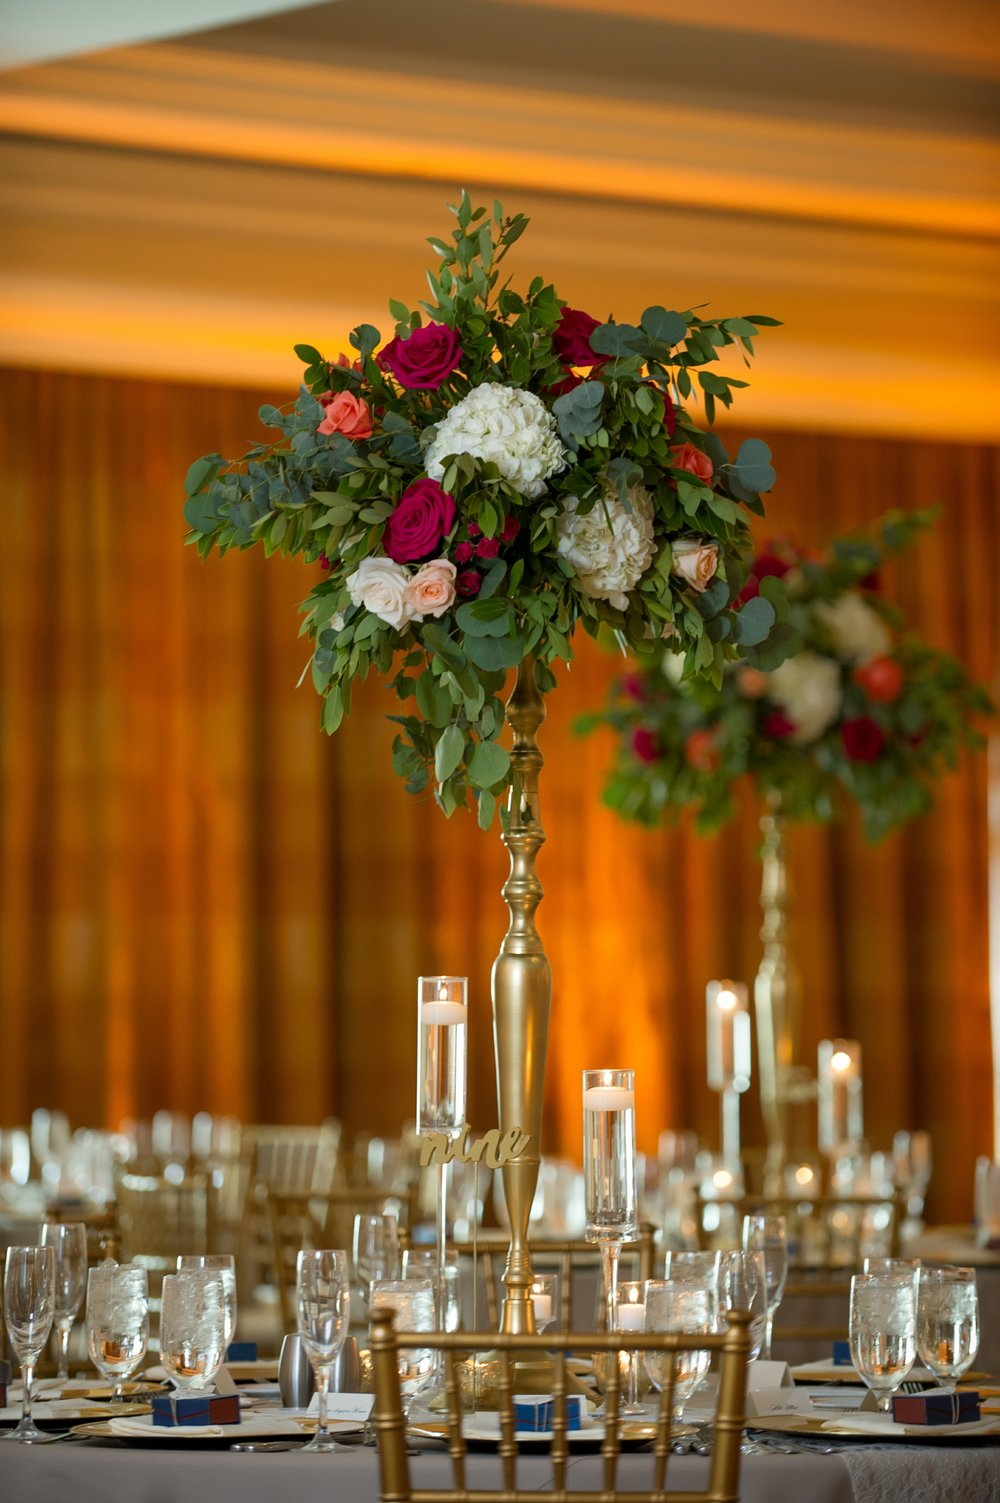 Floating candles and gold table numbers sat beneath gold pillar vases overflowing with greenery and florals.